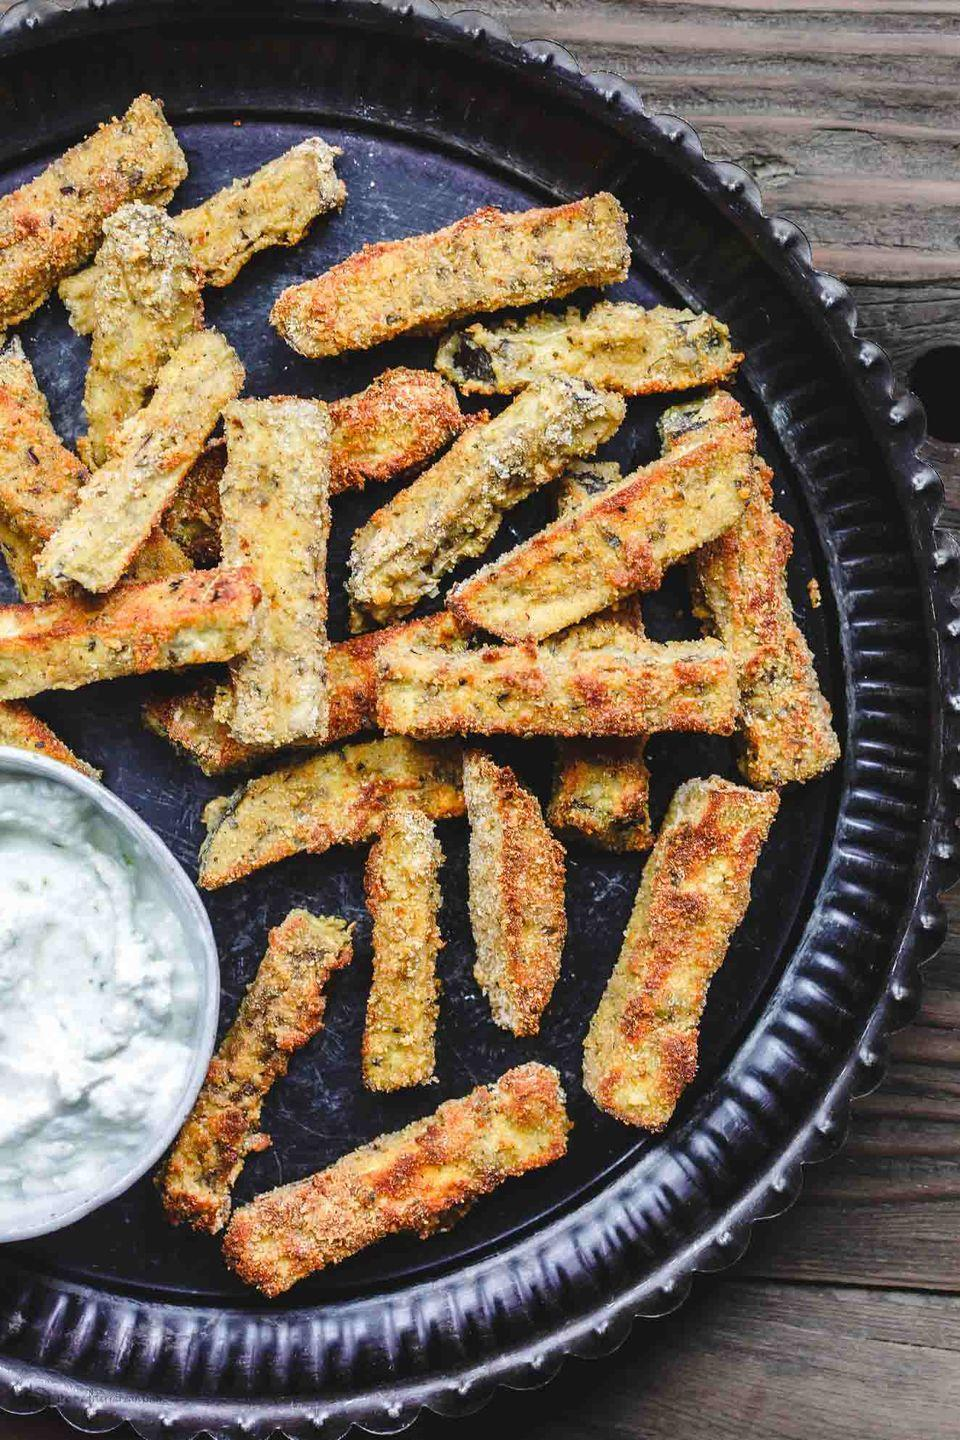 "<p>If you're a fry lover, you know the struggle — you want to eat them <em>all </em>the time. Thankfully, these baked bites are a healthy alternative to enjoy guilt-free.</p><p><a href=""https://www.themediterraneandish.com/baked-eggplant-fries-tzatziki-sauce/"" rel=""nofollow noopener"" target=""_blank"" data-ylk=""slk:Get the recipe from The Mediterranean Dish »"" class=""link rapid-noclick-resp""><em>Get the recipe from The Mediterranean Dish »</em></a><span class=""redactor-invisible-space""><br></span></p>"